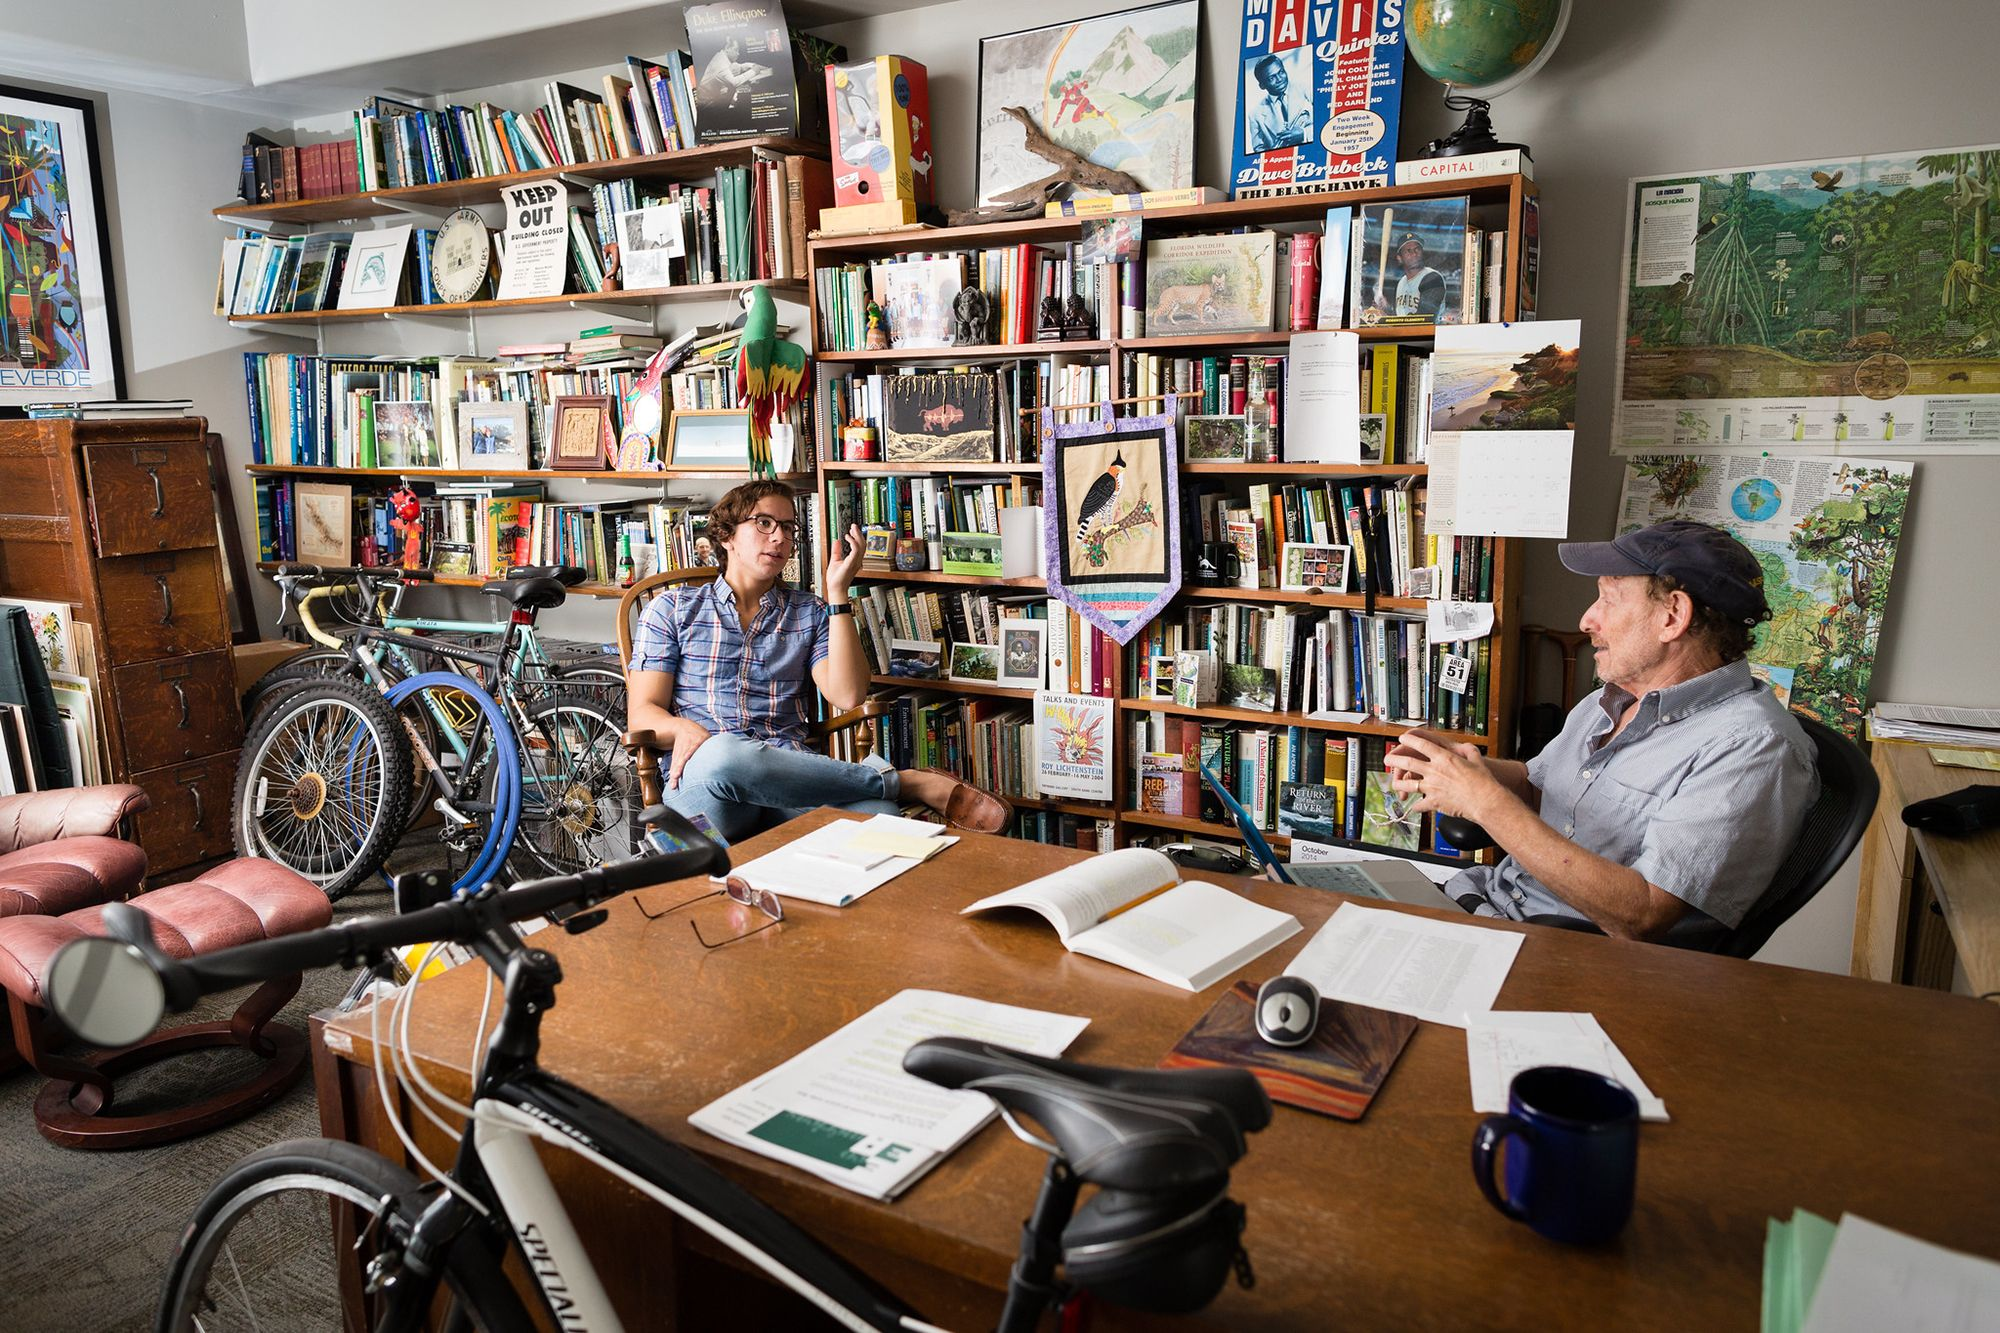 A college professor and graduate student talking in his book and bike filled office.